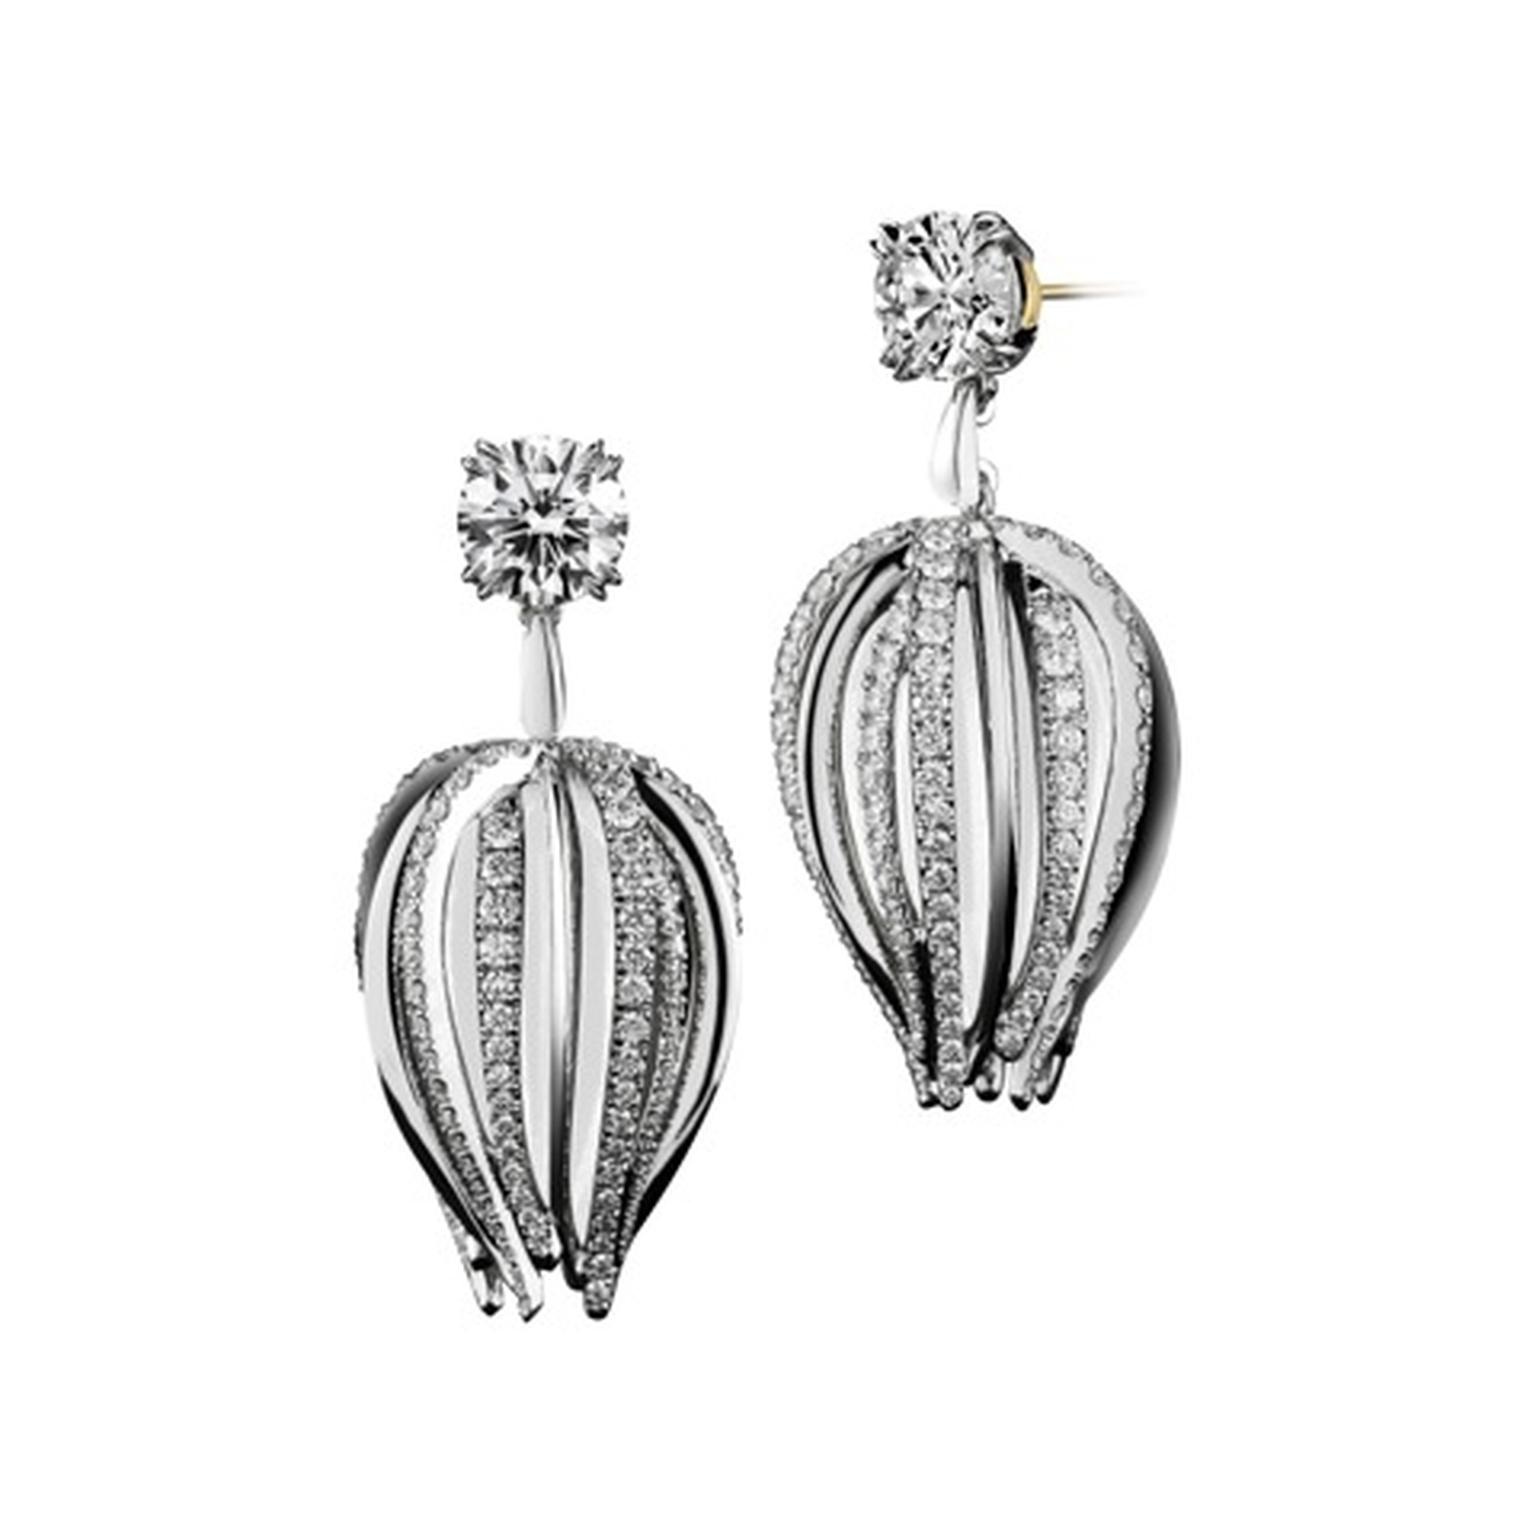 Alexandra Mor_Curved Dangling Diamond Earrings_WHT BG _HighRez.jpg